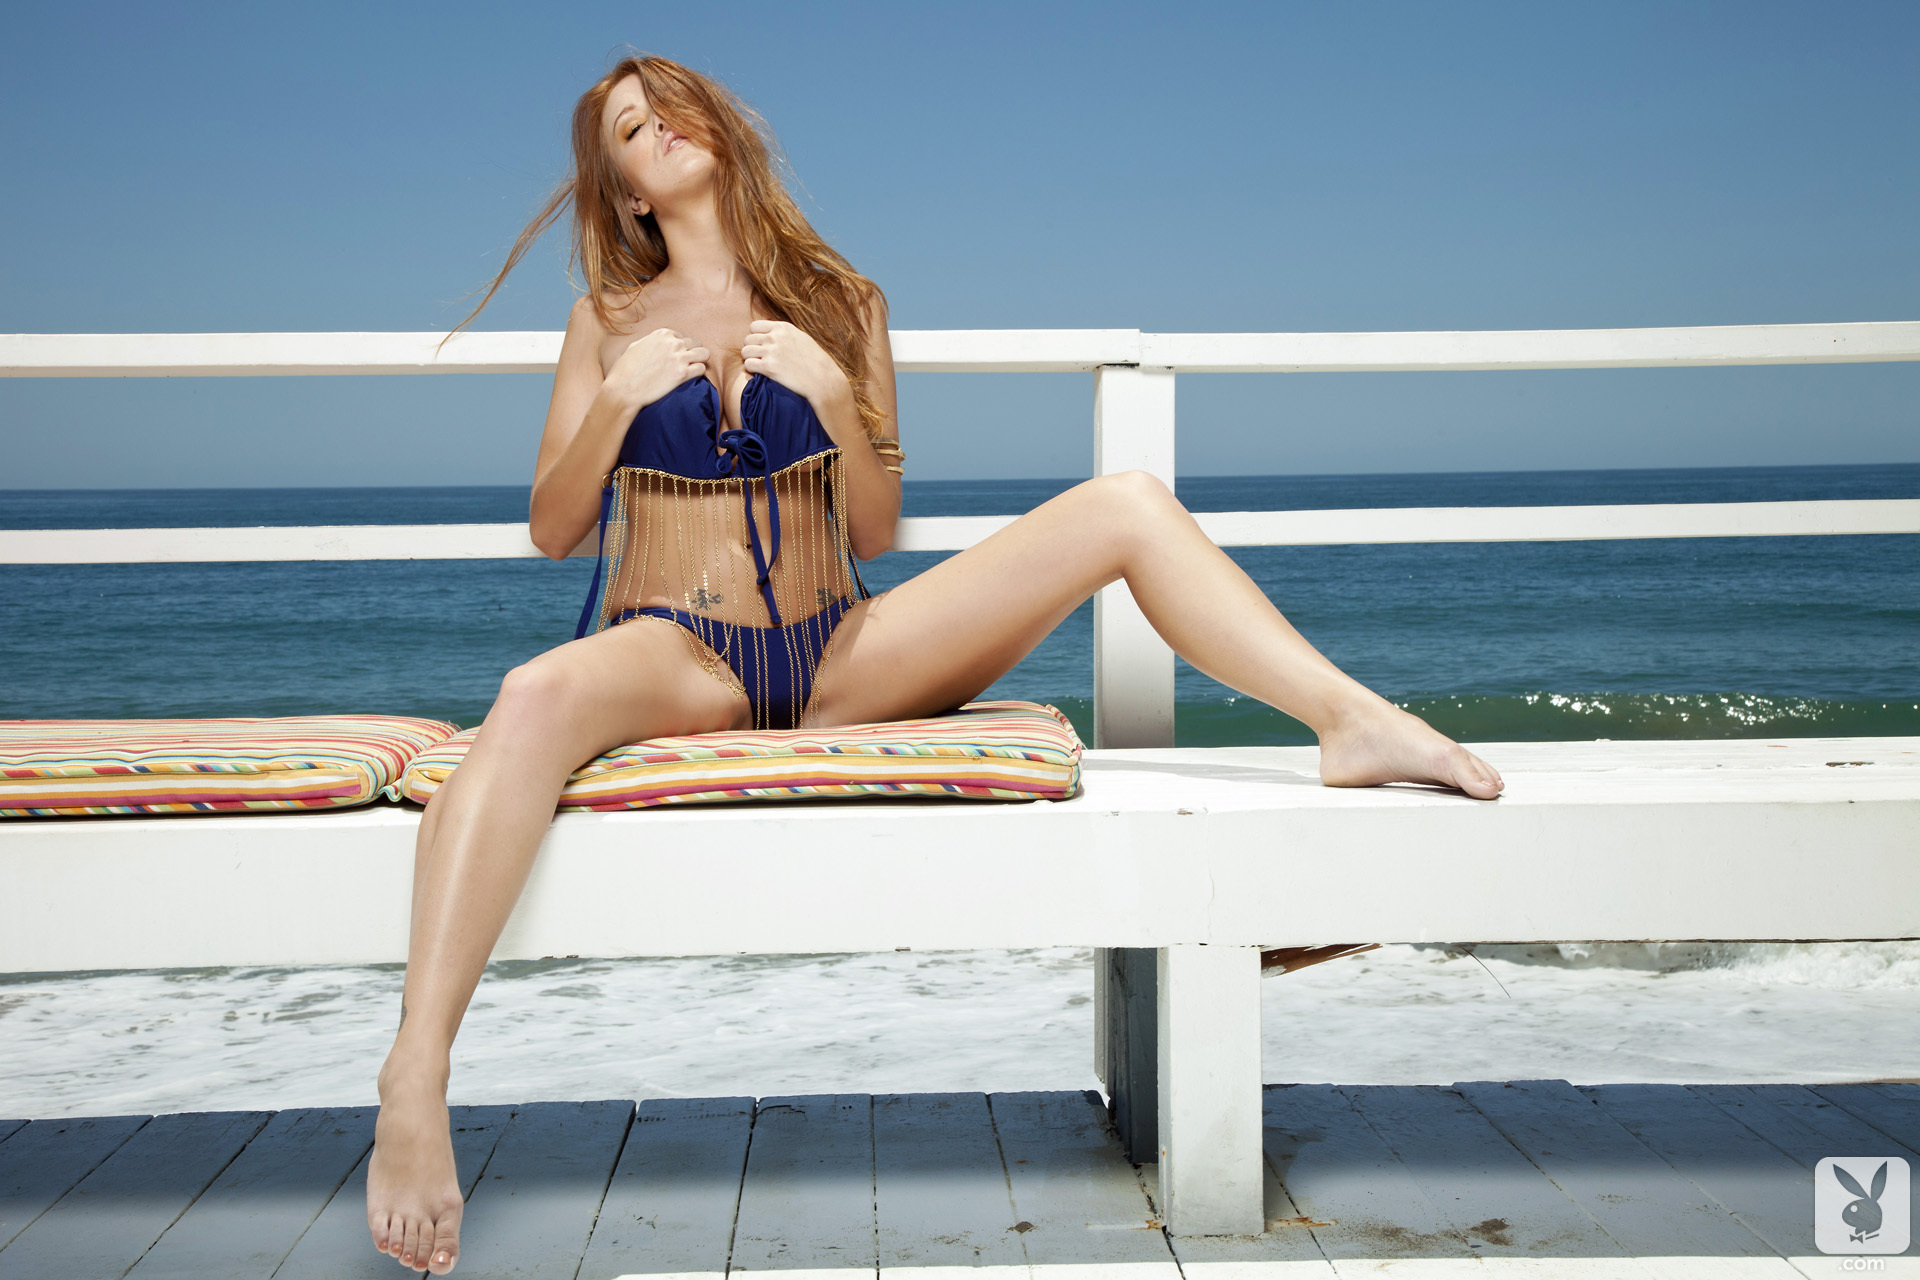 leanna-decker-bikini-boobs-redhead-seaside-playboy-03